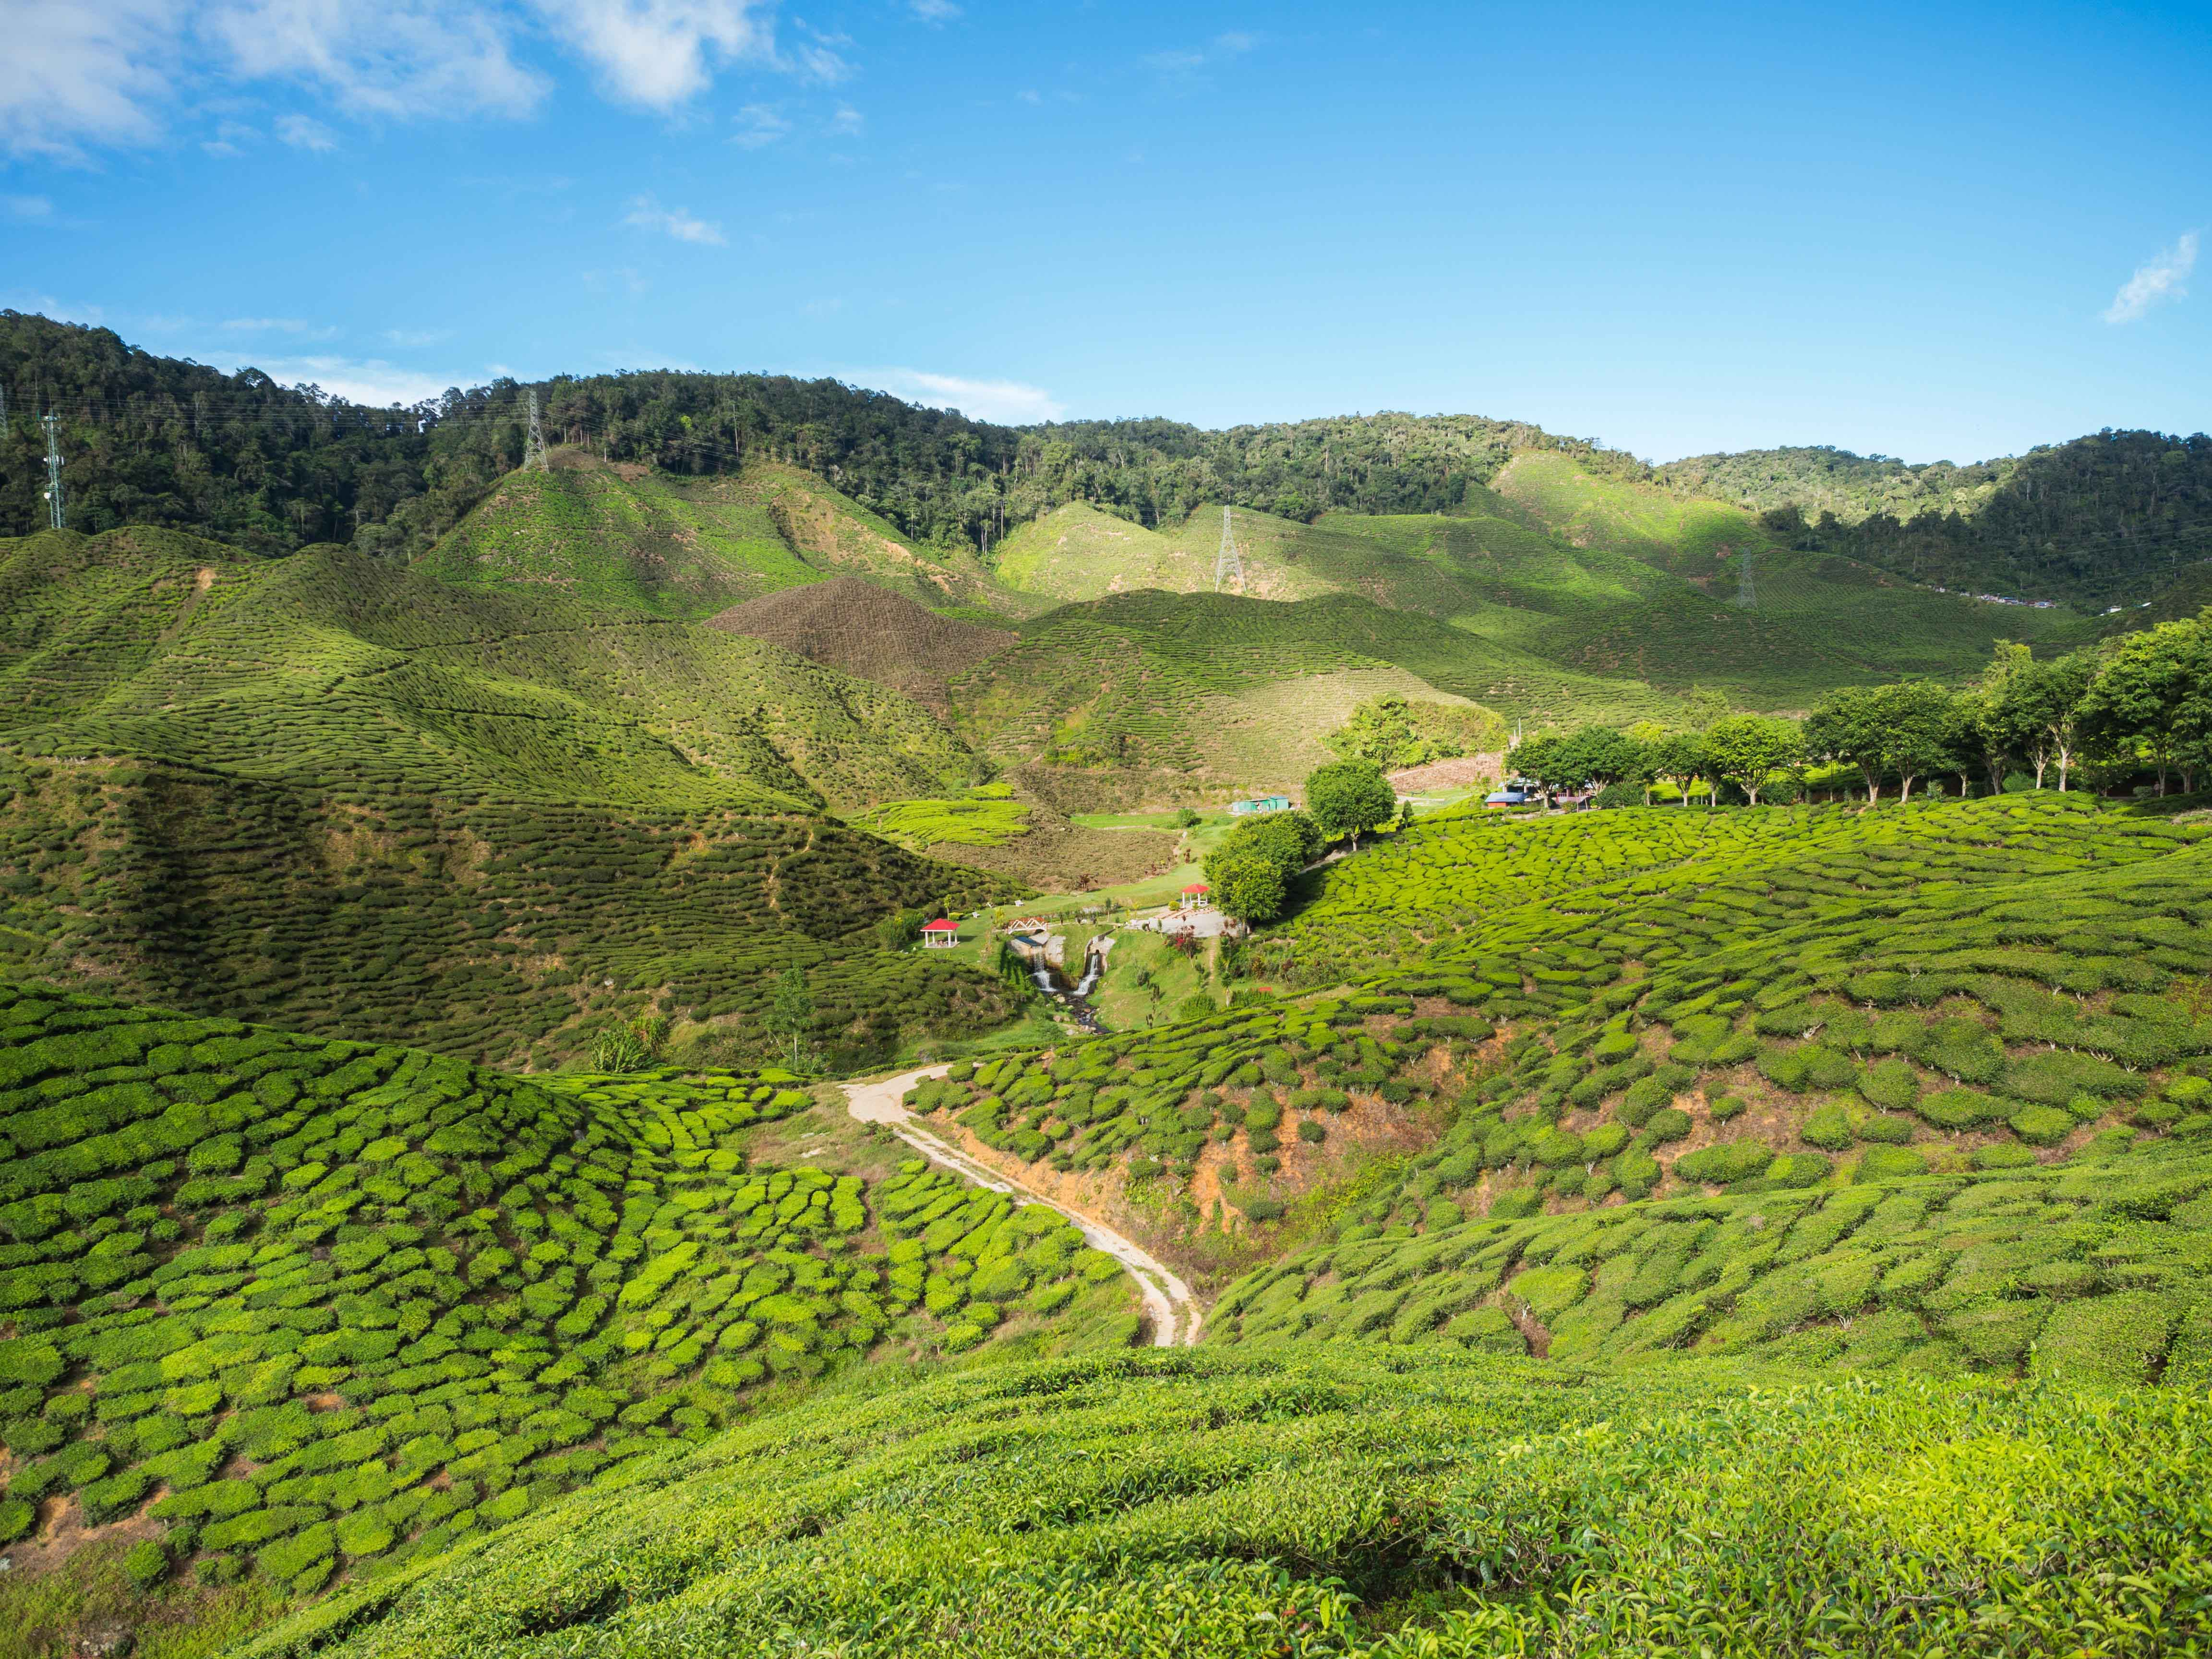 How to Spend 24 Hours in Cameron Highlands, Malaysia